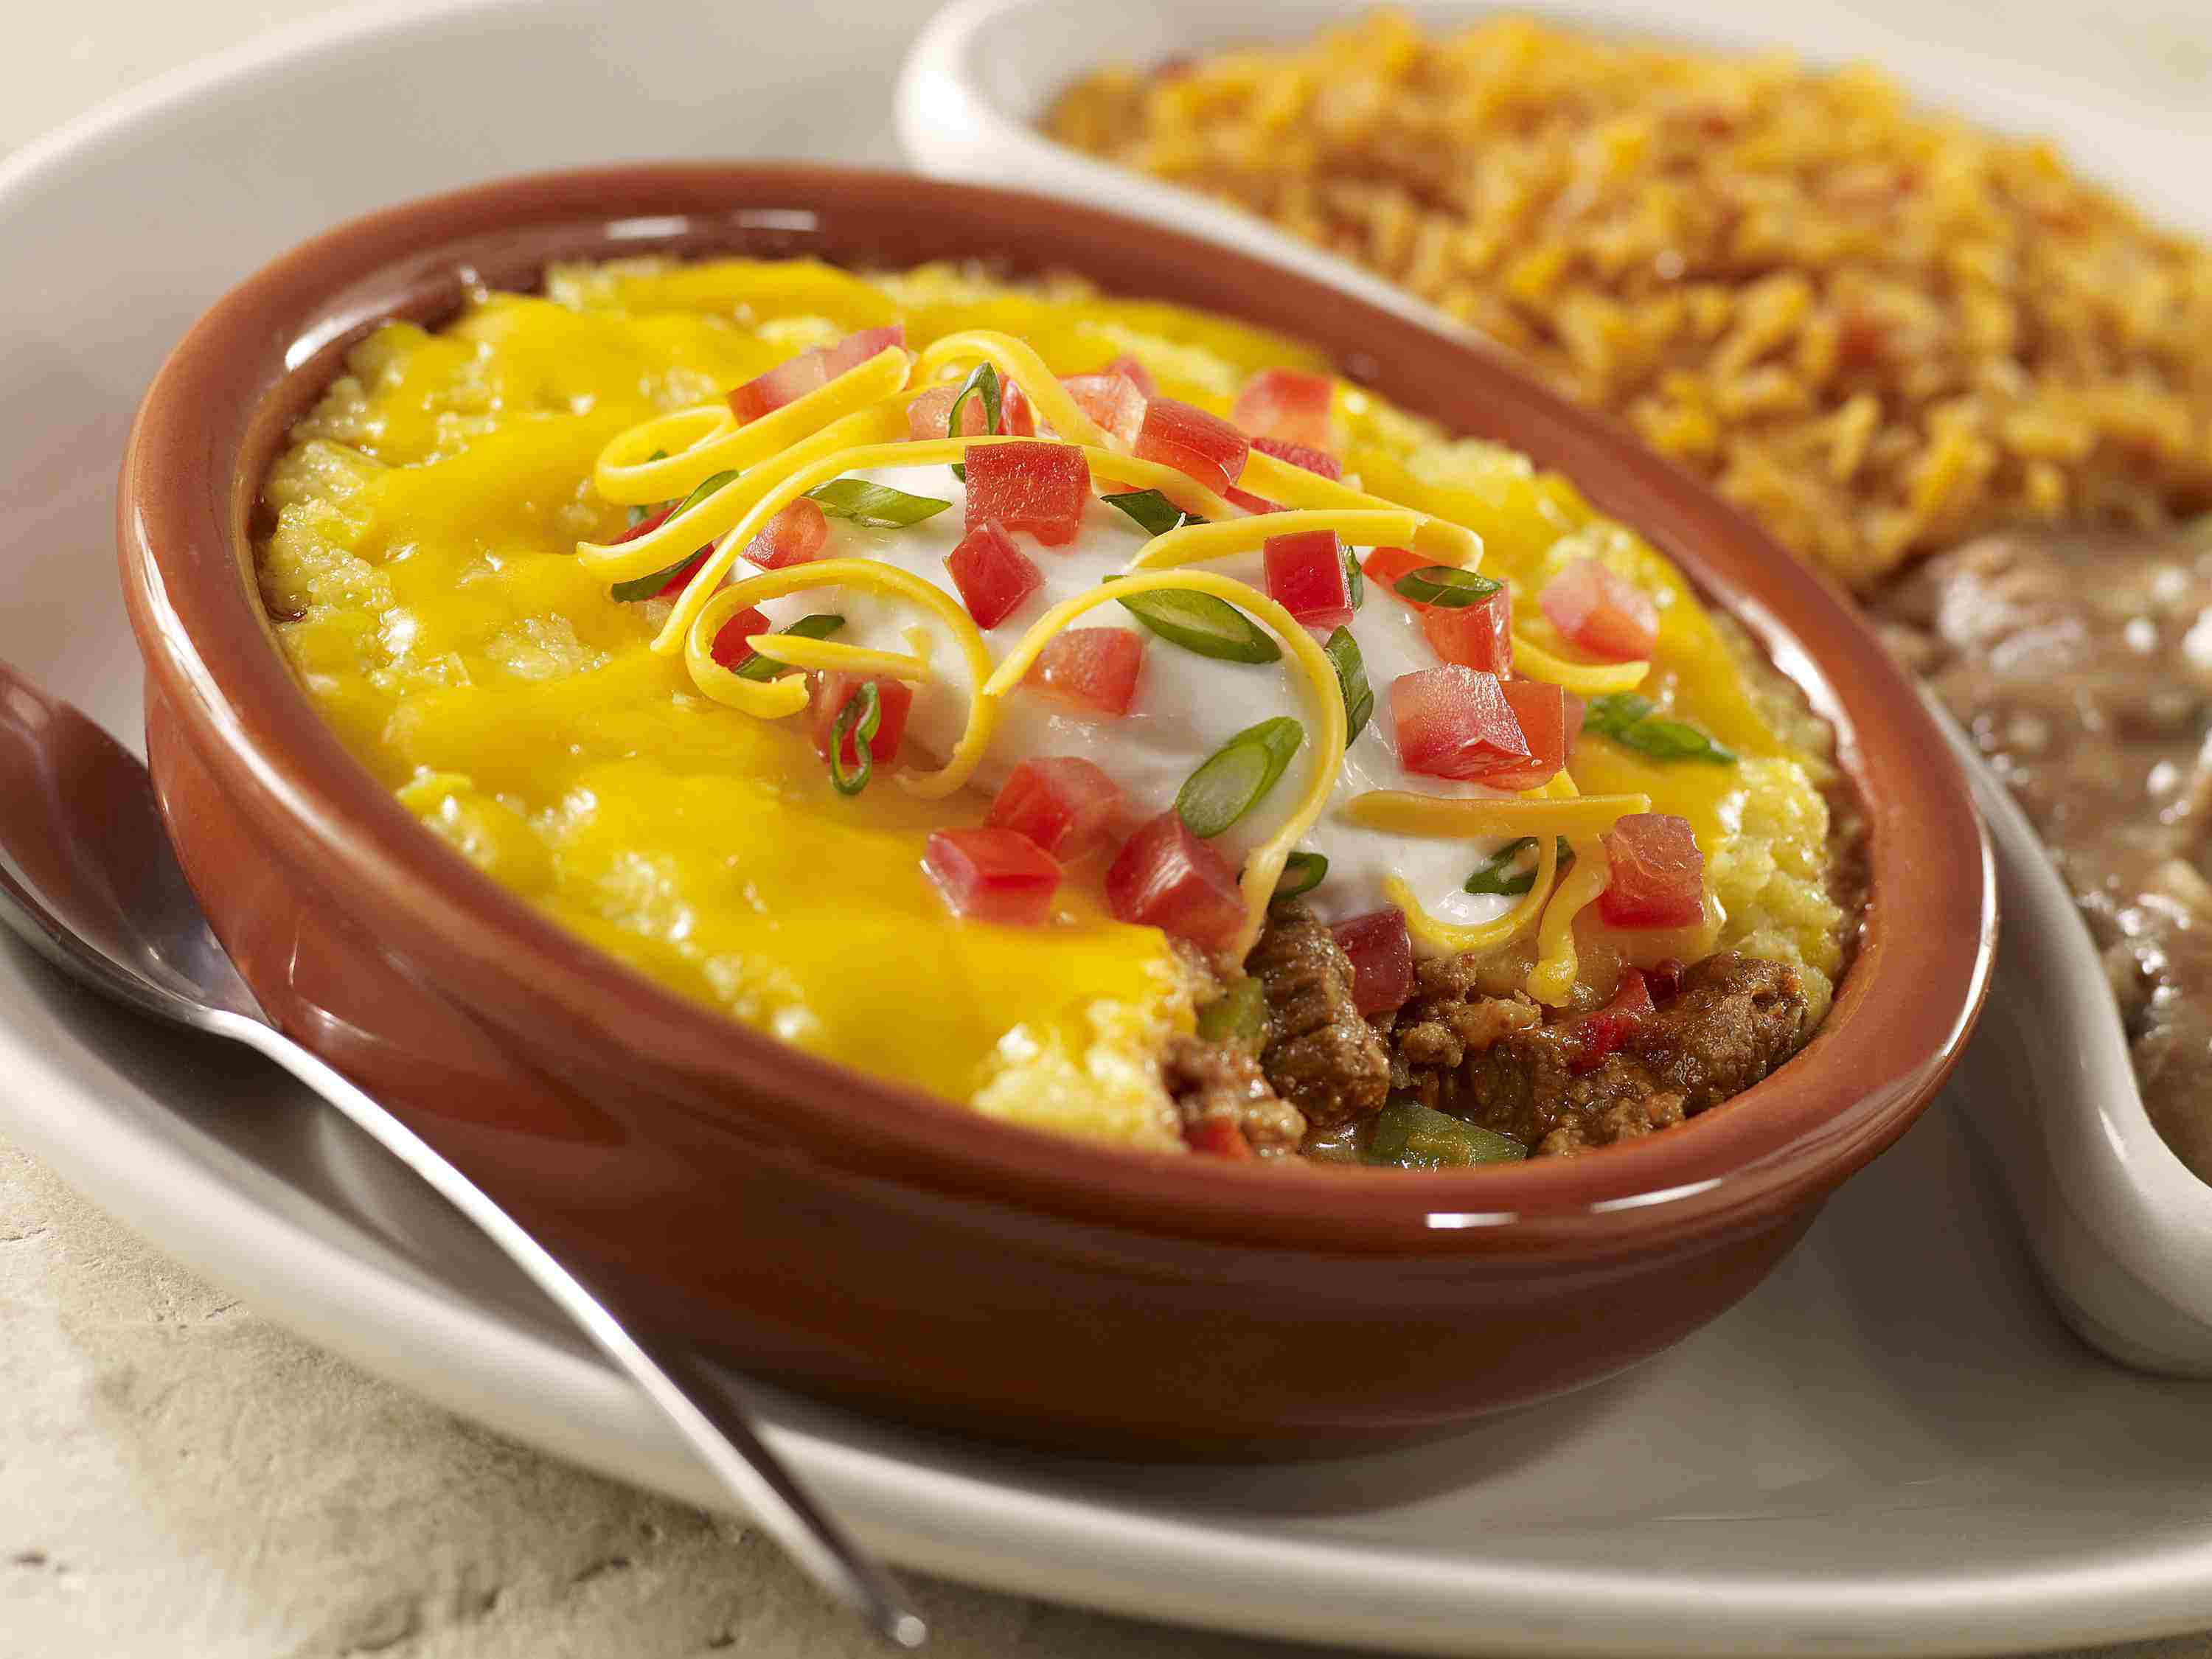 Crock pot beef tamale pie topped with a cheesy cornbread batter